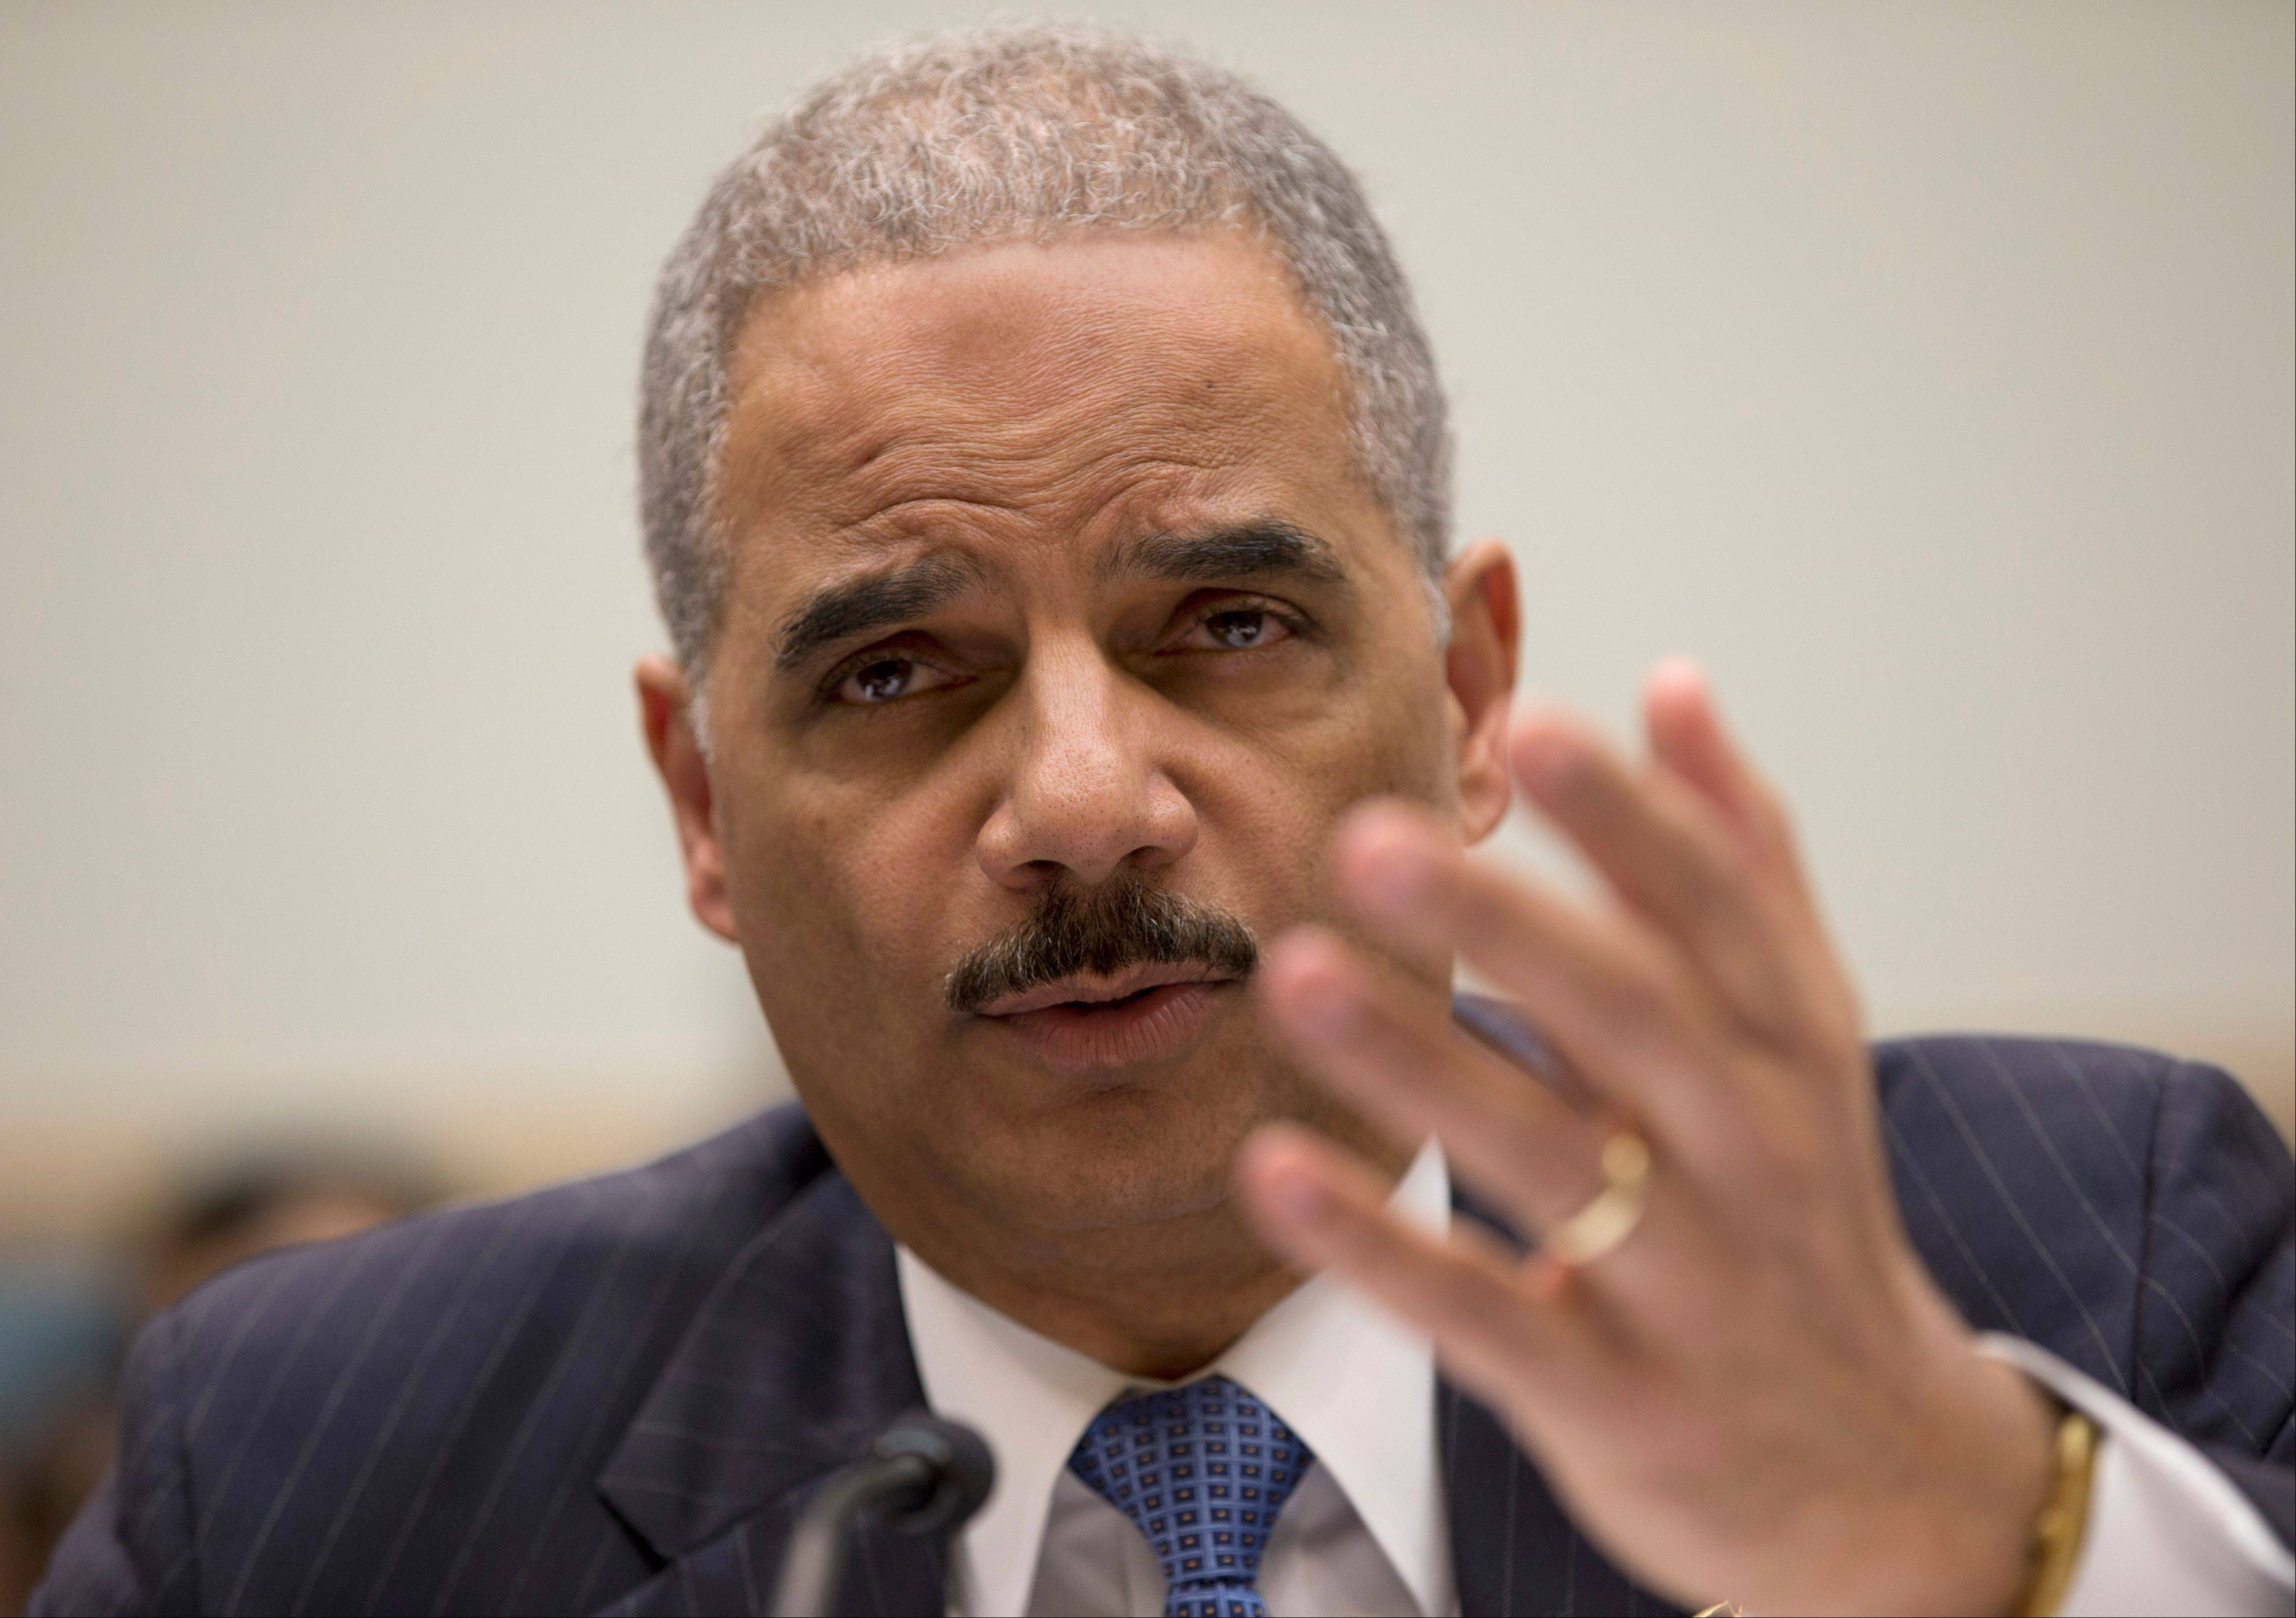 Attorney General Eric Holder testifies on Capitol Hill in Washington Wednesday before the House Judiciary Committee oversight hearing on the Justice Department.